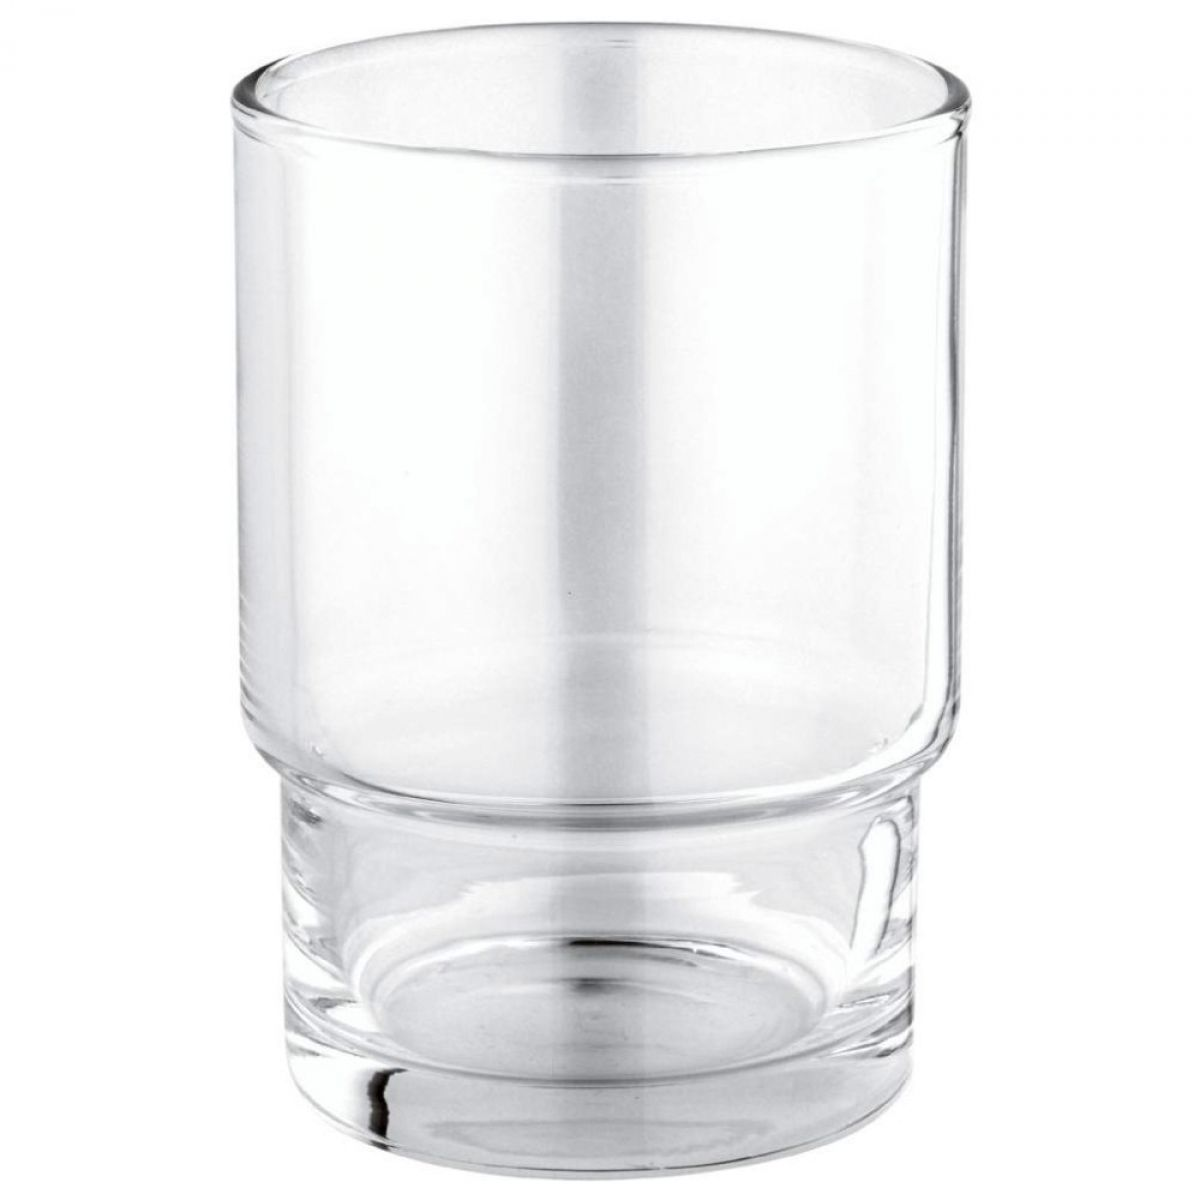 ... Grohe Essentials Glass Tumbler With Holder ...